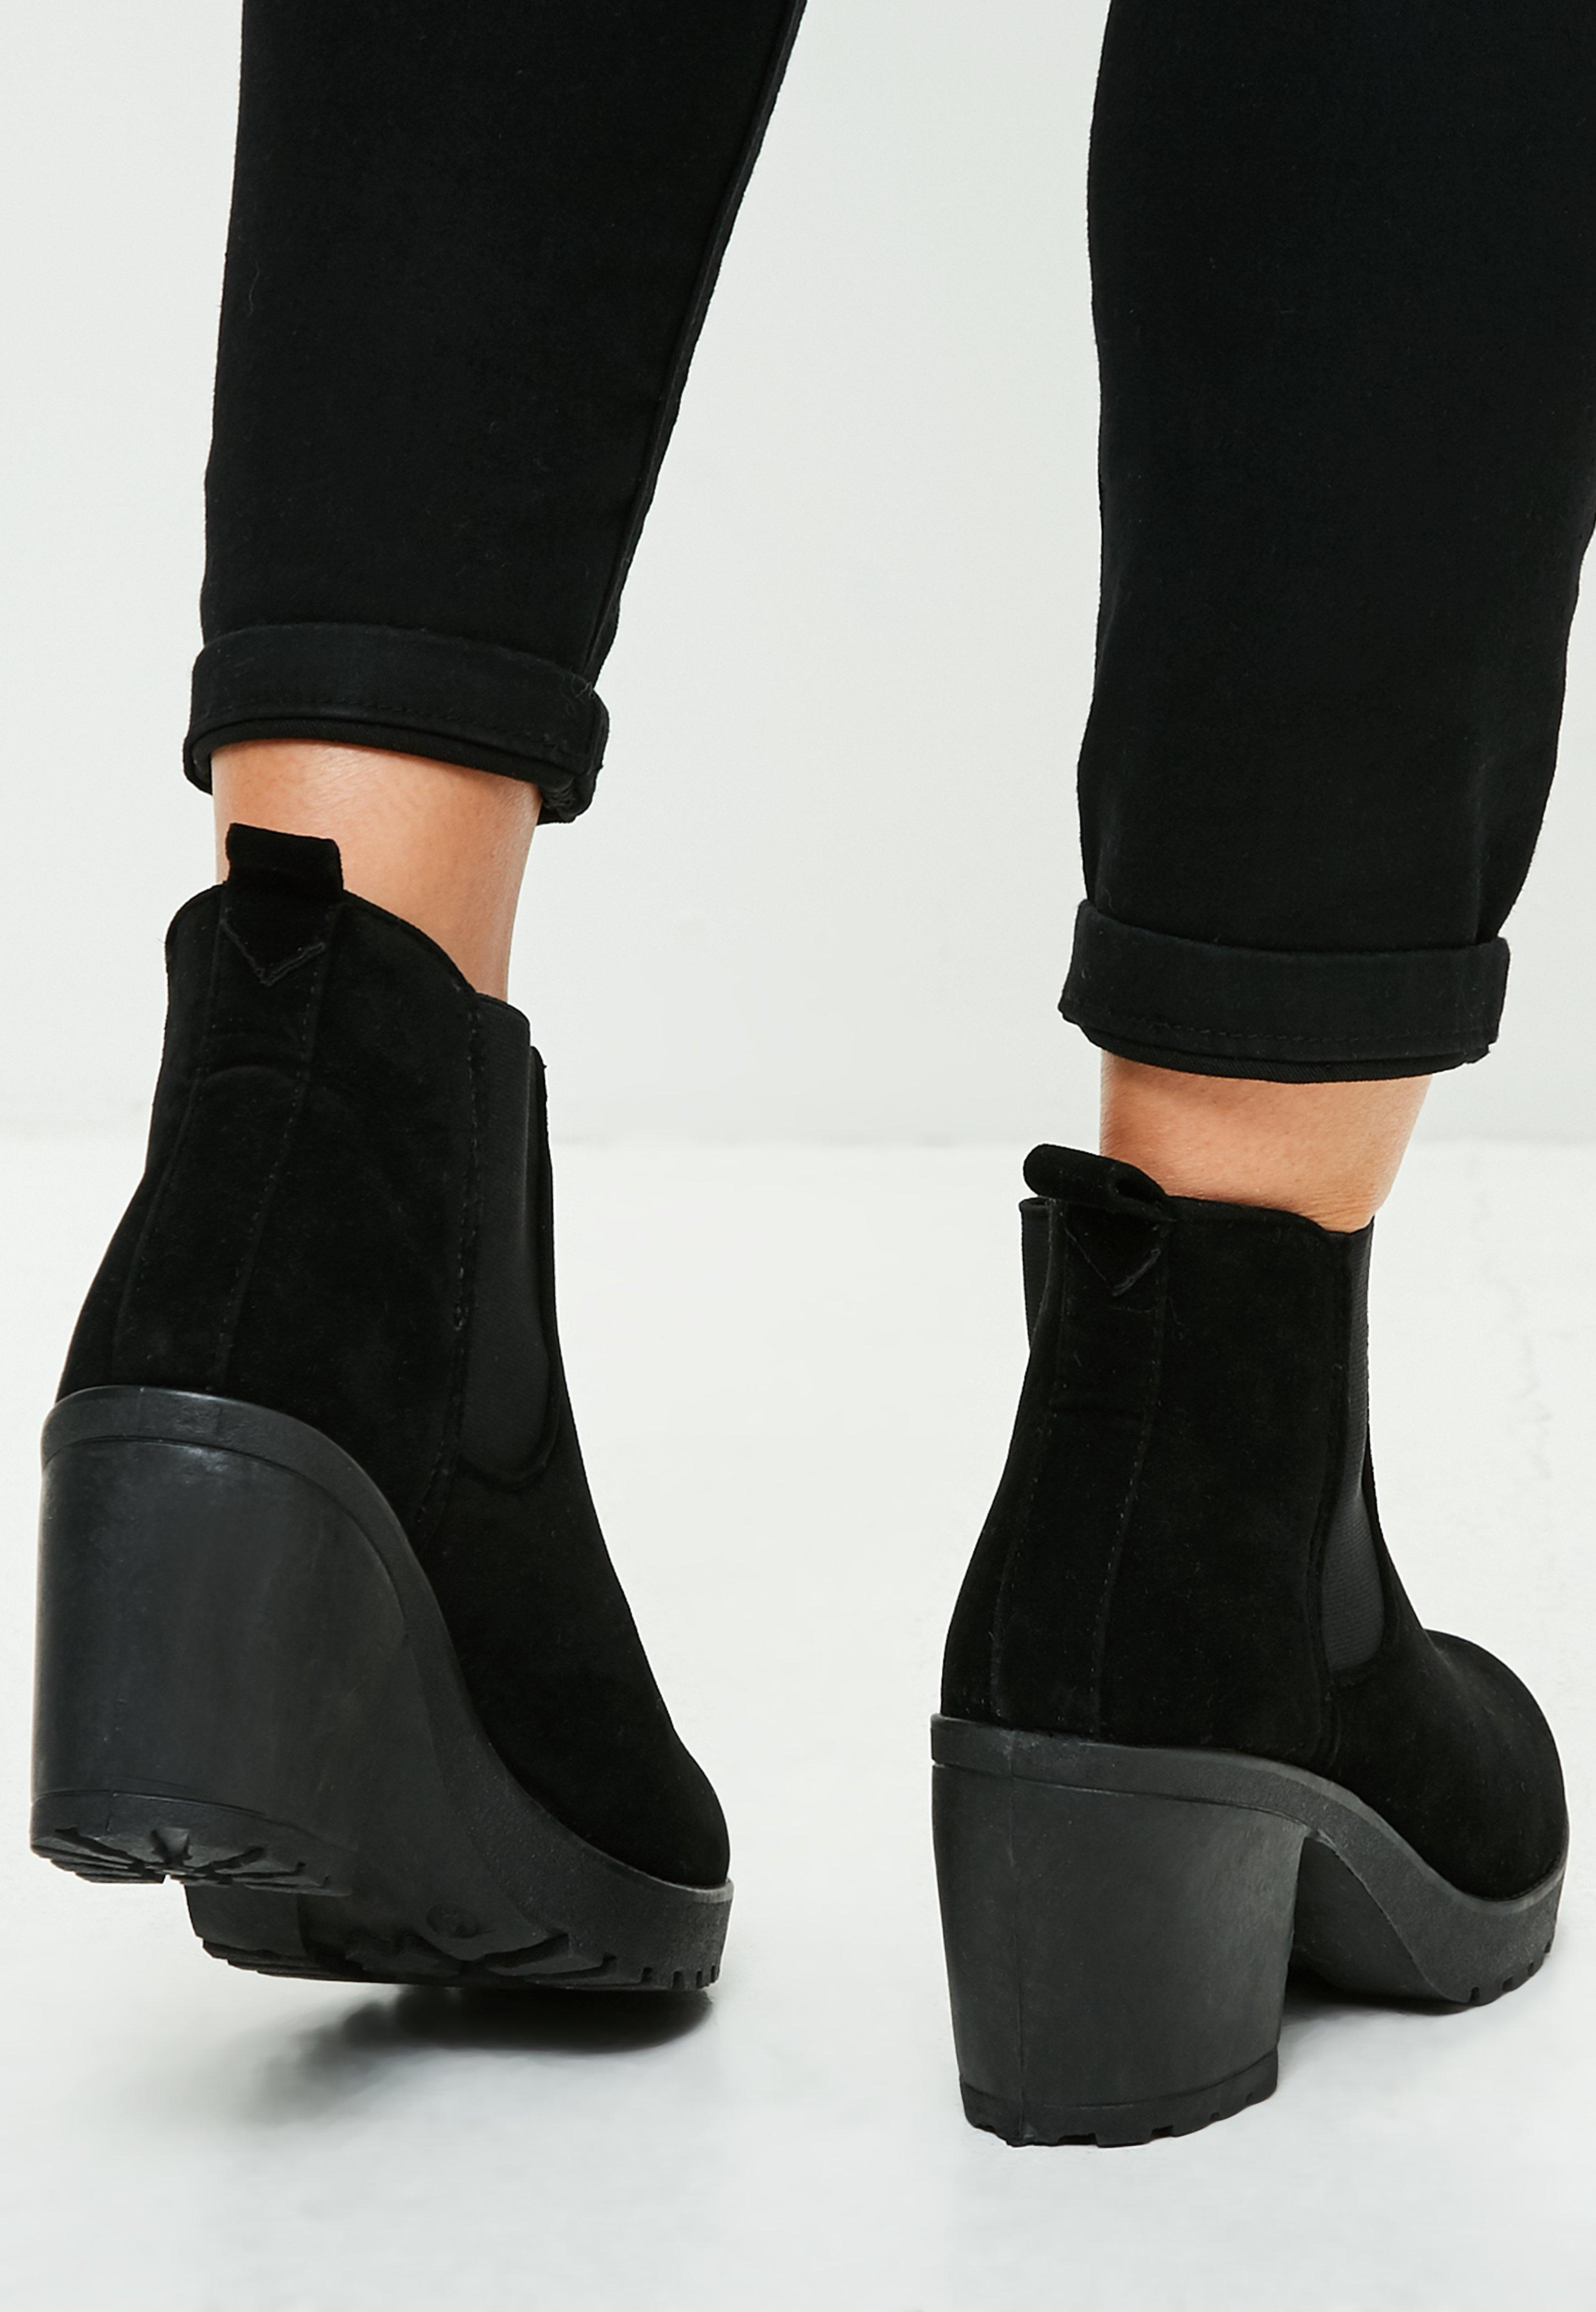 175030e96548 Lyst - Missguided Black Faux Suede Cleated Sole Ankle Boots in Black